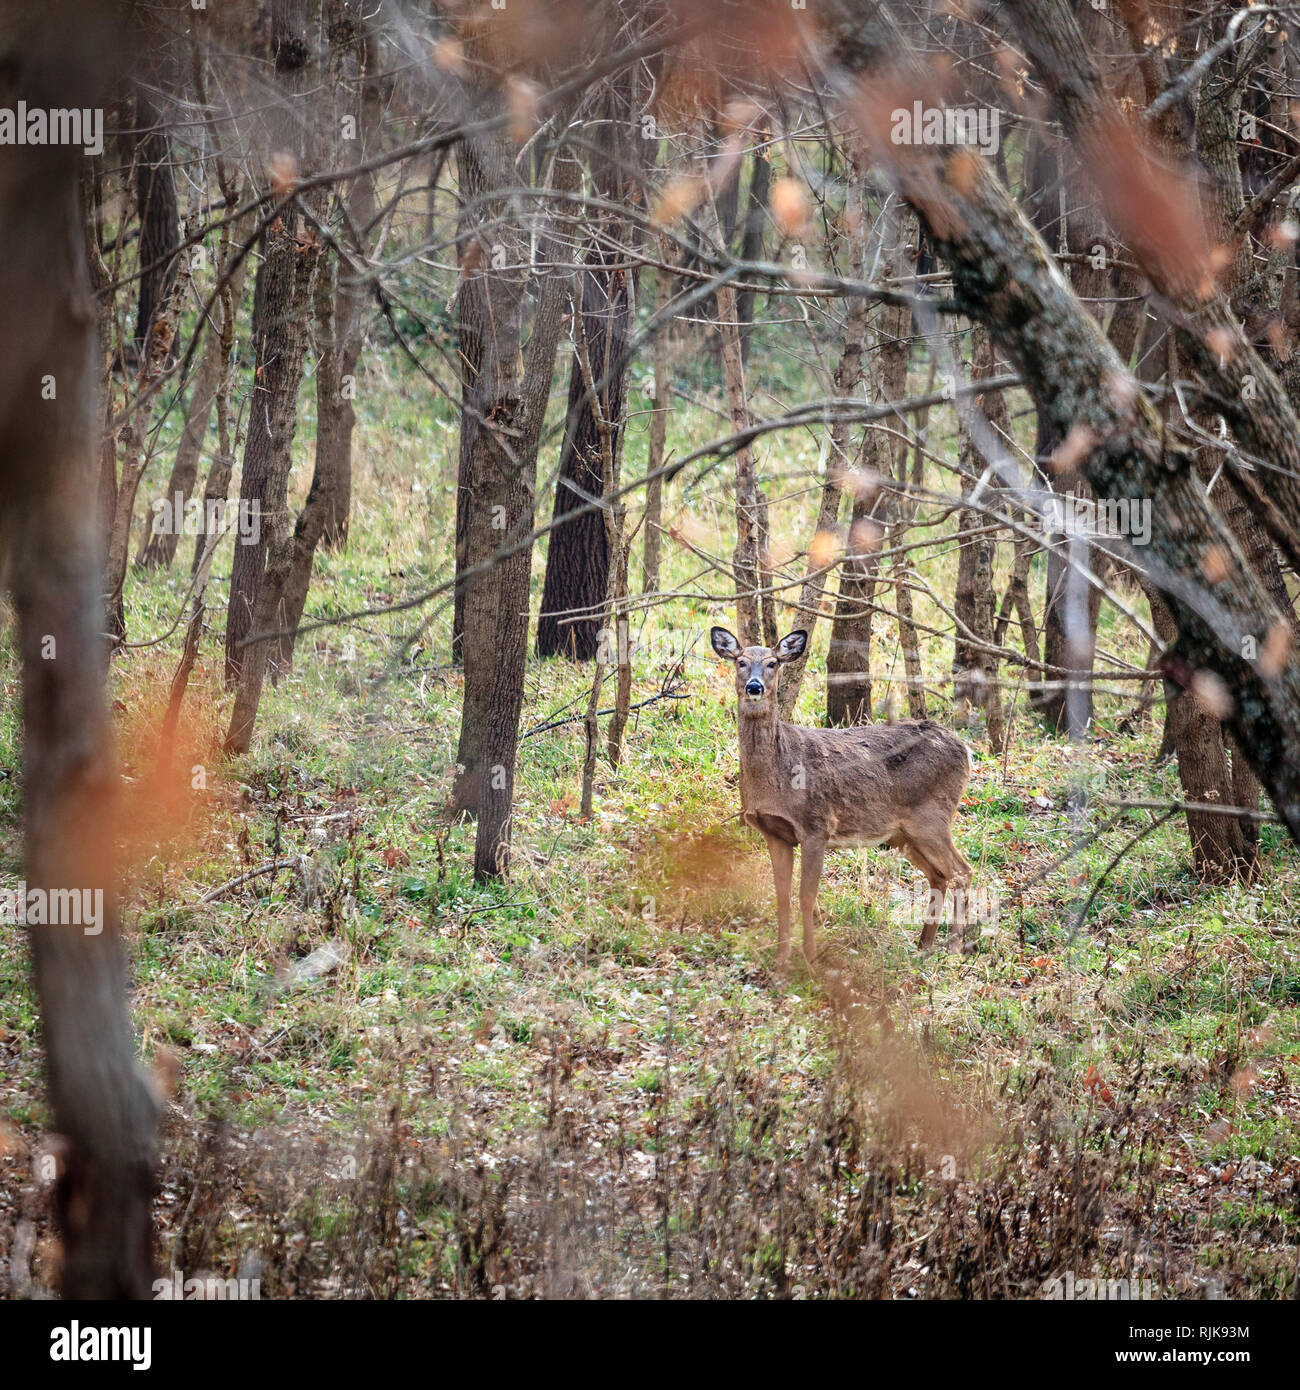 Deer Hunting And America Stock Photos Amp Deer Hunting And